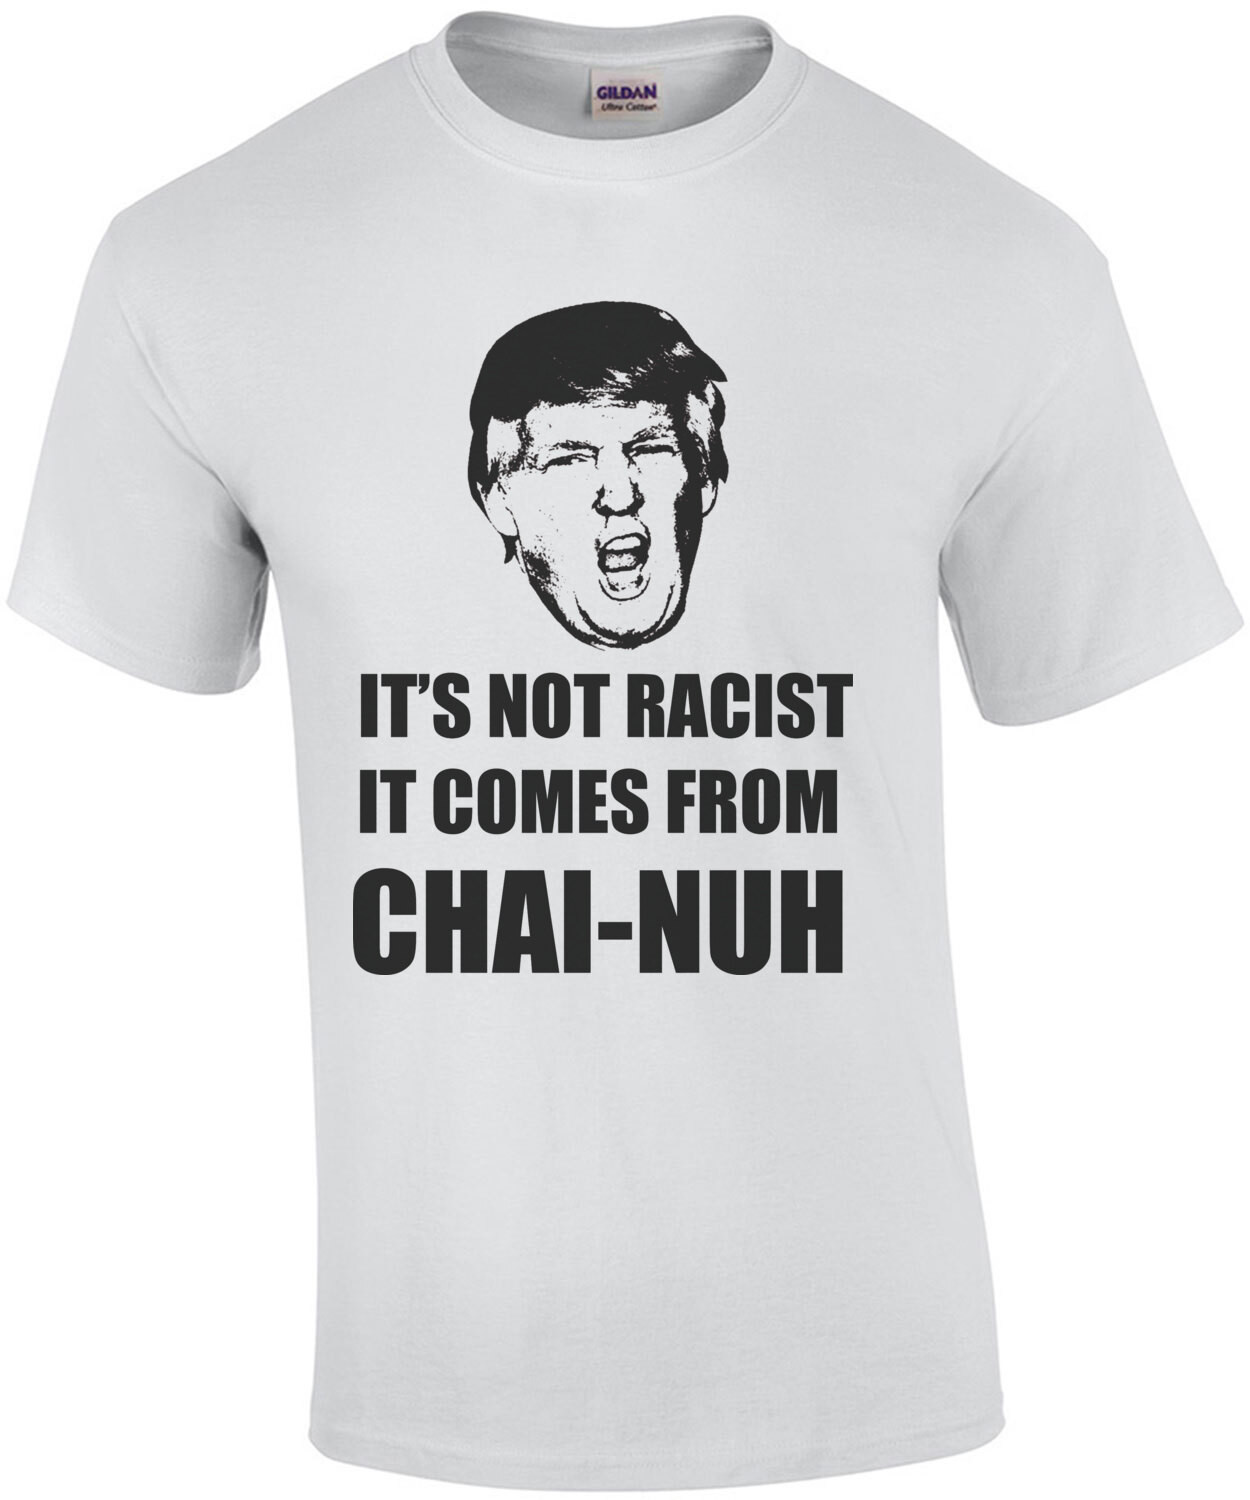 It's Not Racist, It Comes From Chai-nuh  Funny Trump China Shirt